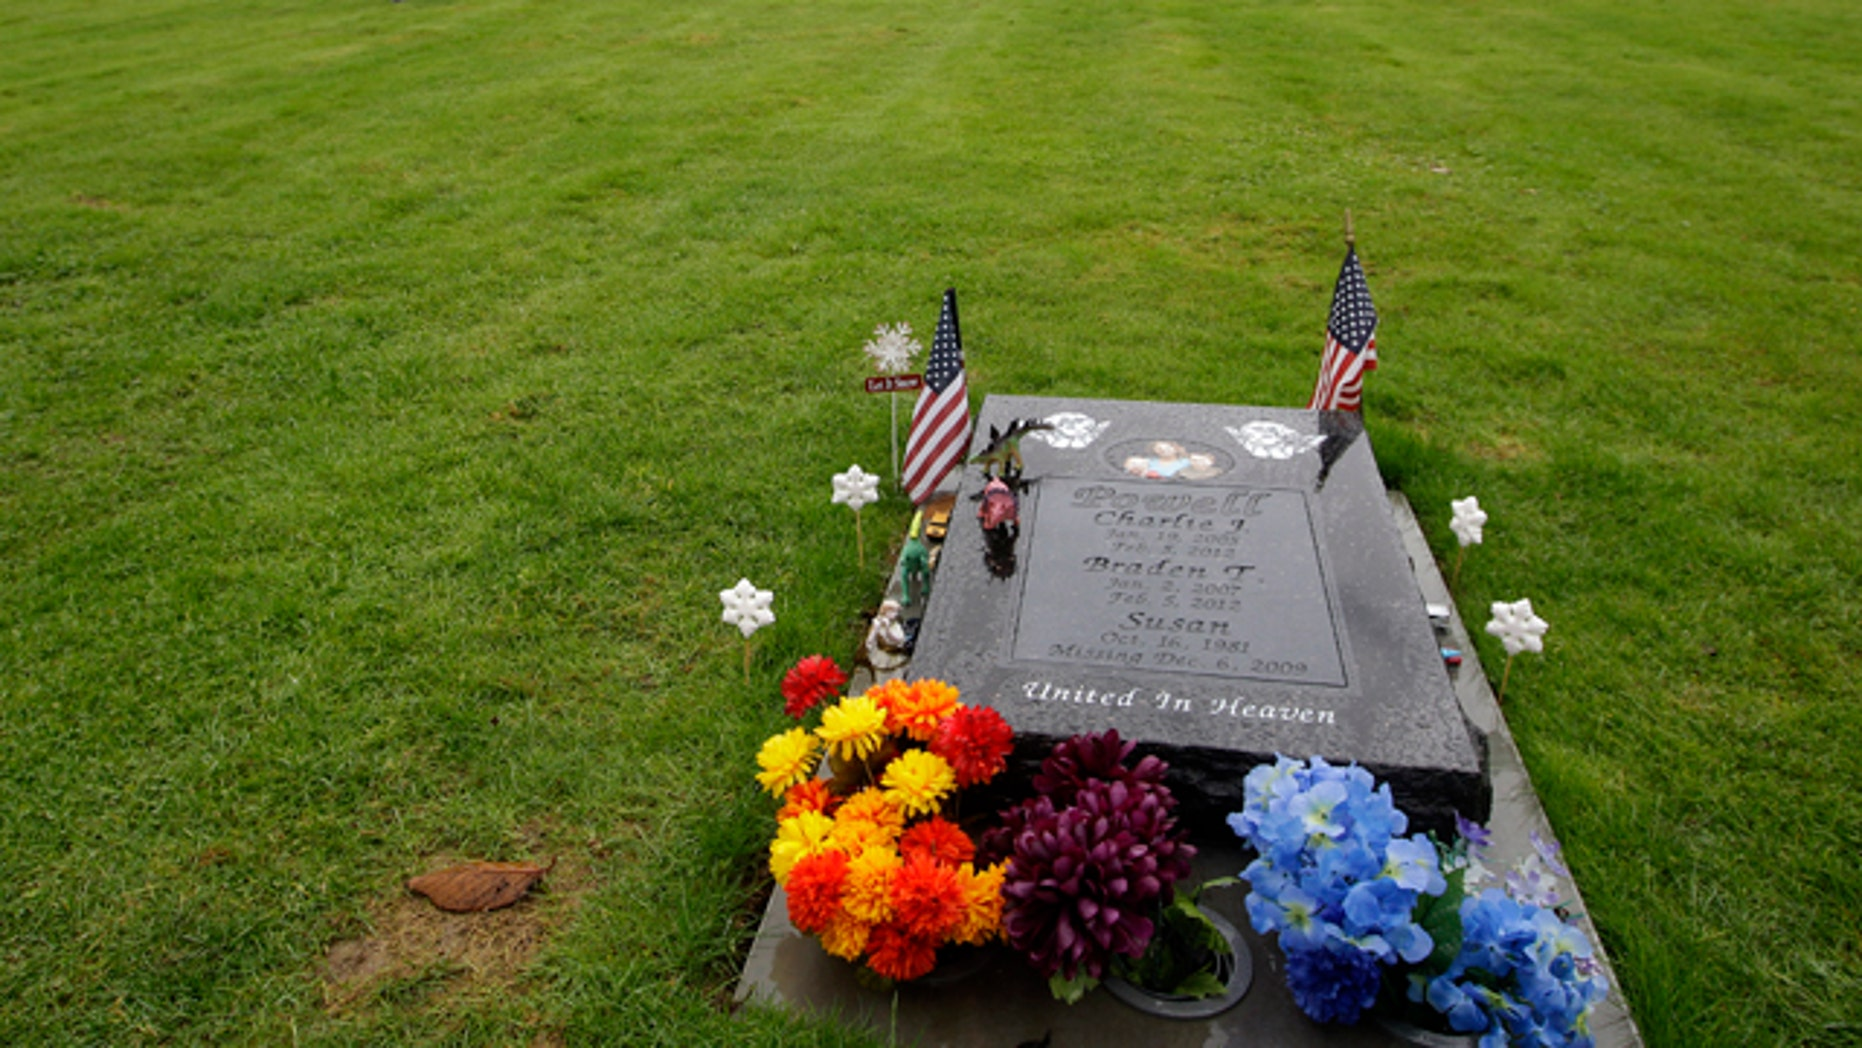 Dec. 3, 2012: The gravesite of Charlie and Braden Powell, who were killed by their father, Josh Powell, before taking his own life earlier in 2012 during an investigation into the disappearance of Josh's wife, Susan, is shown at Woodbine Cemetery in Puyallup, Wash. (AP)